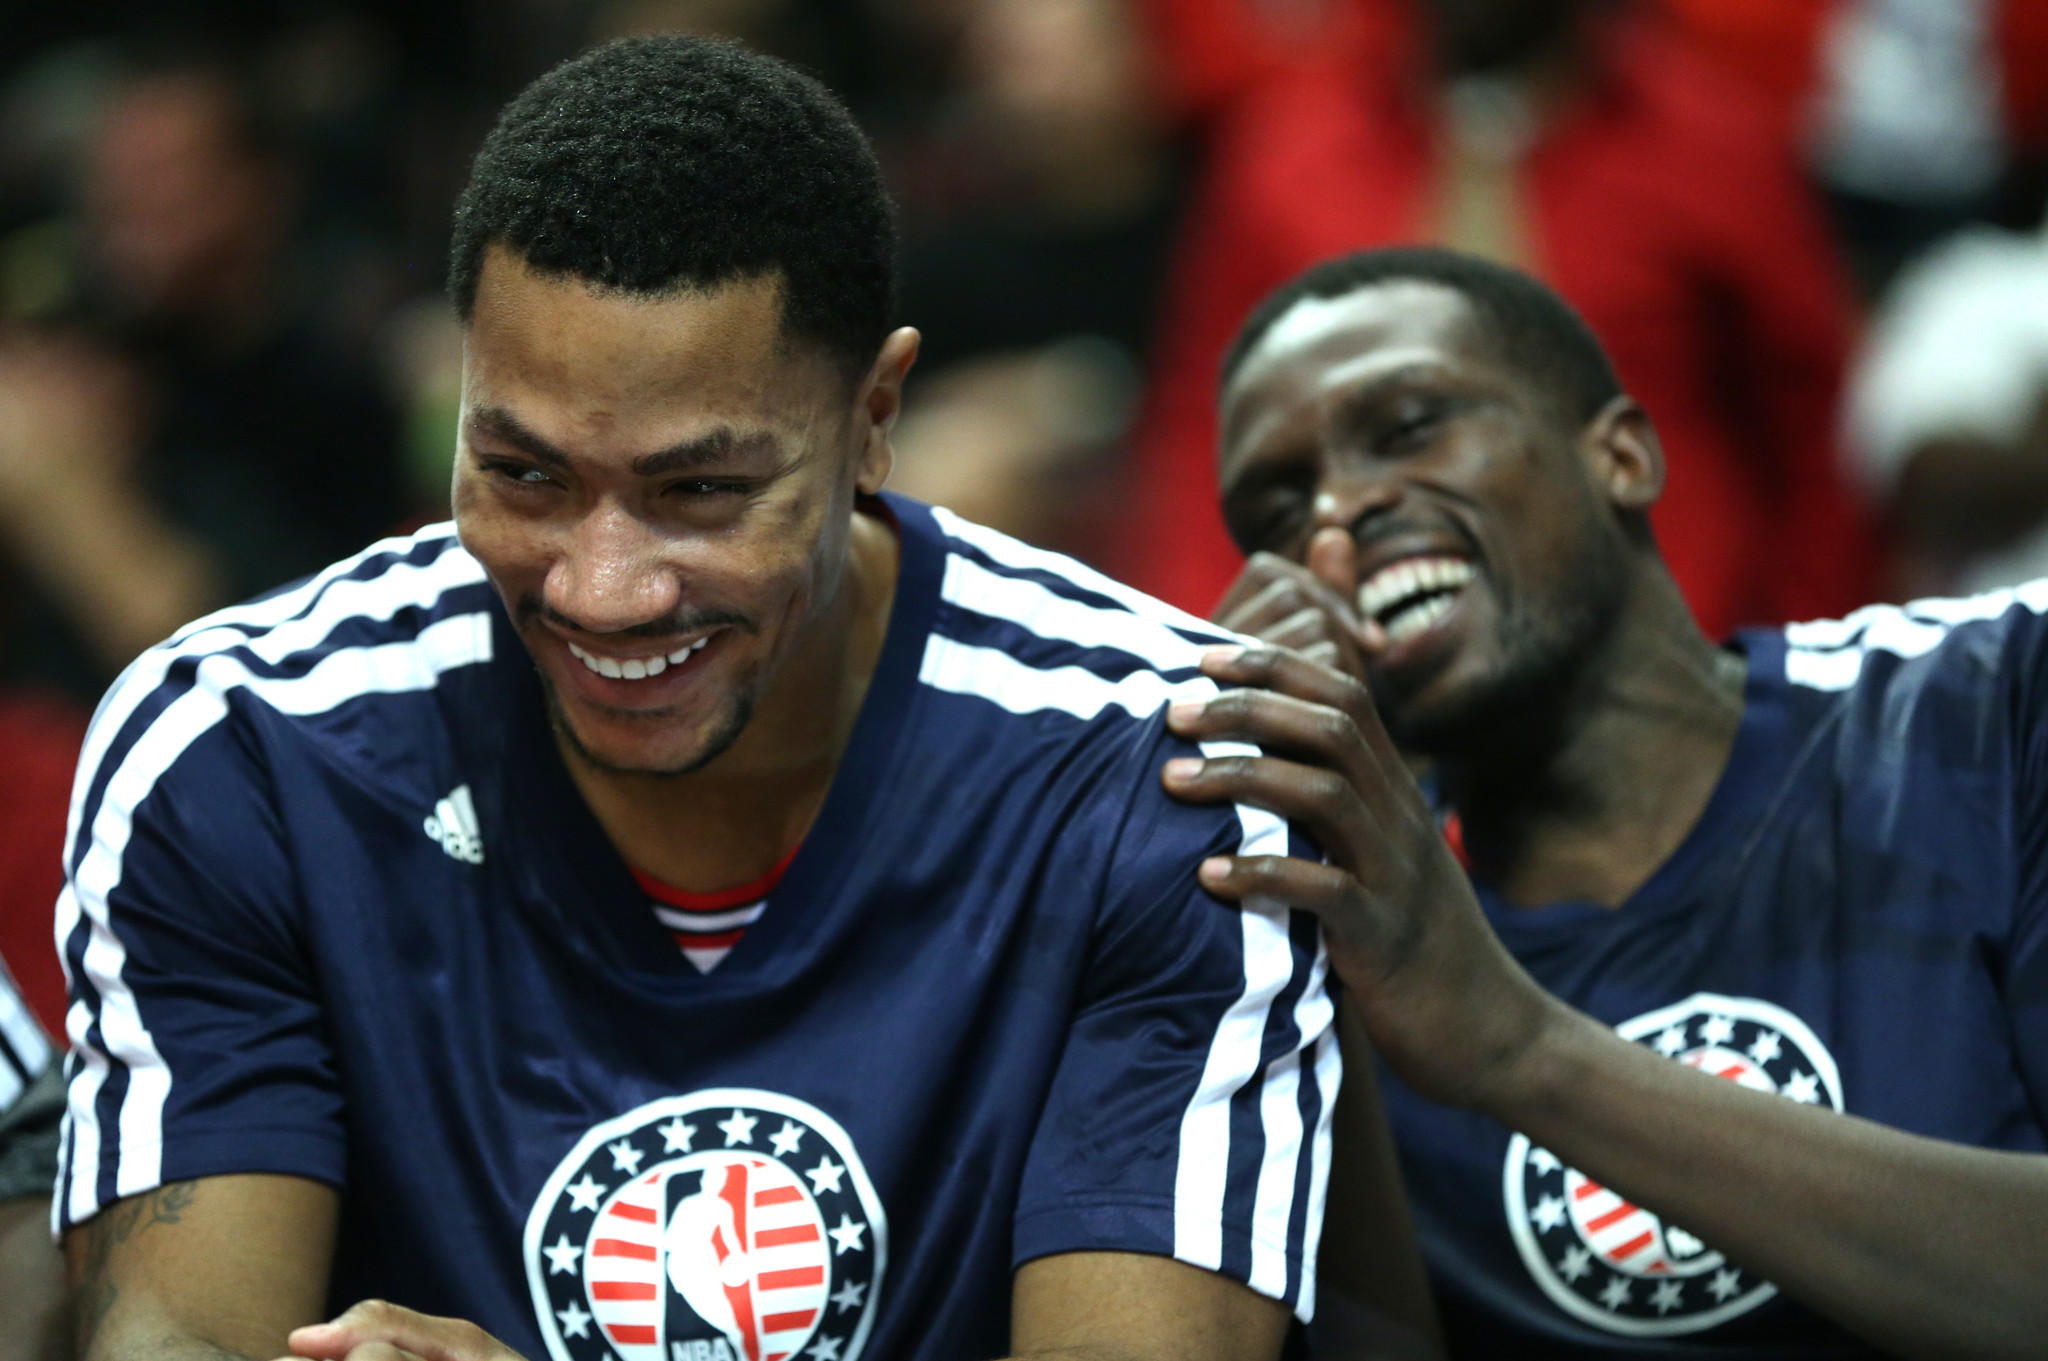 Now that Luol Deng (right) has been traded, the Bulls need Derrick Rose to help the team in free agency.